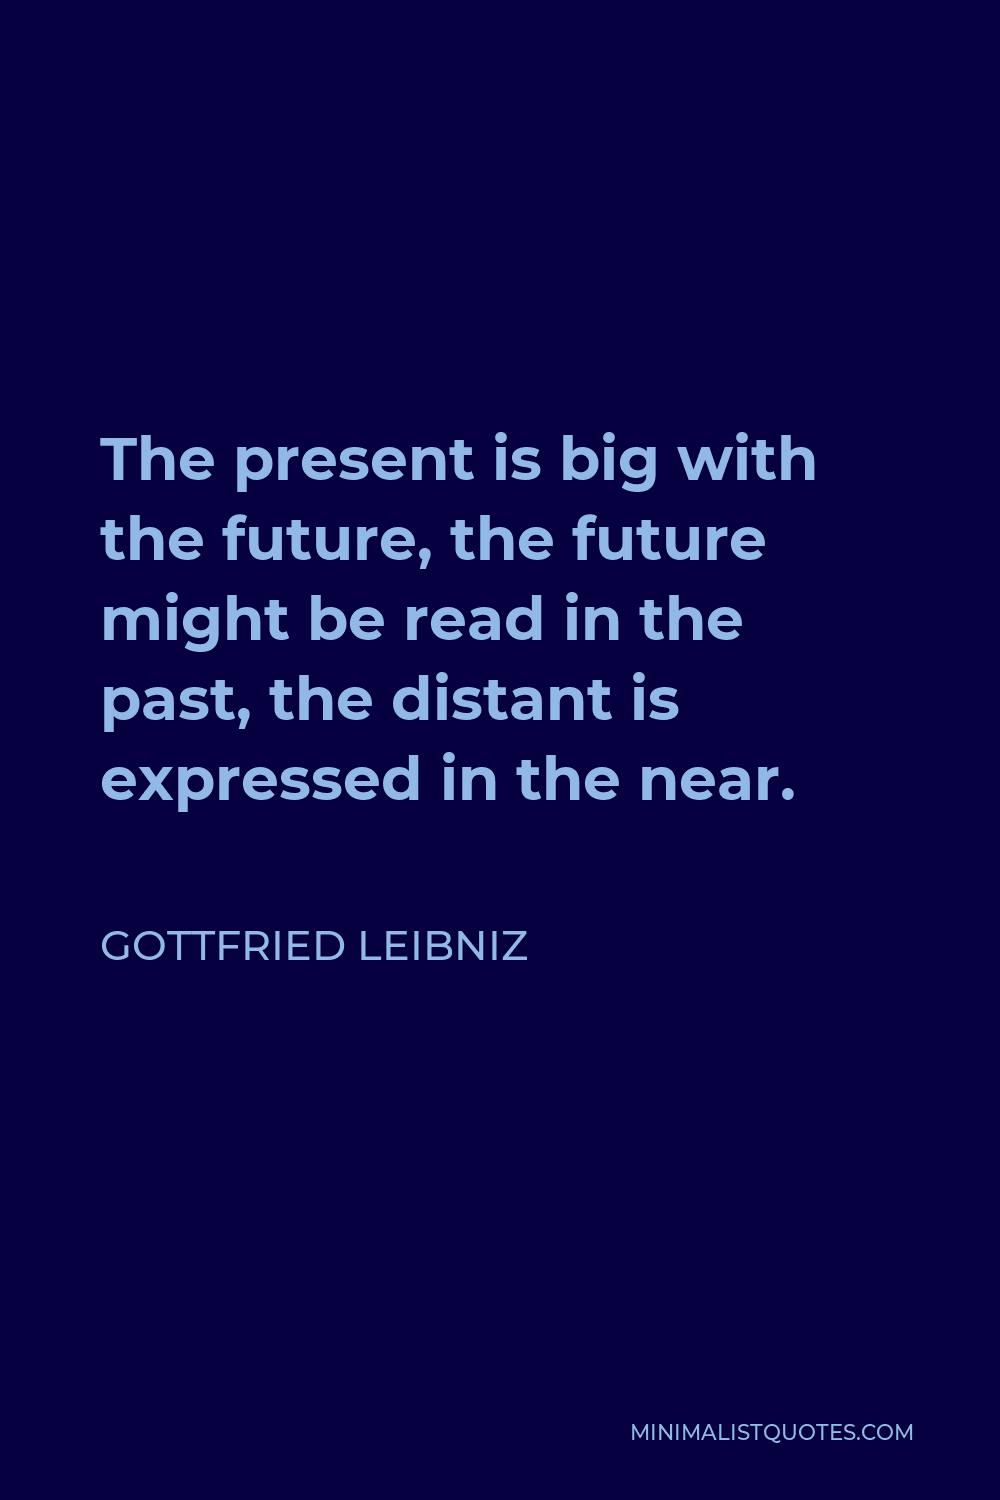 Gottfried Wilhelm Leibniz Quote - The present is big with the future, the future might be read in the past, the distant is expressed in the near.